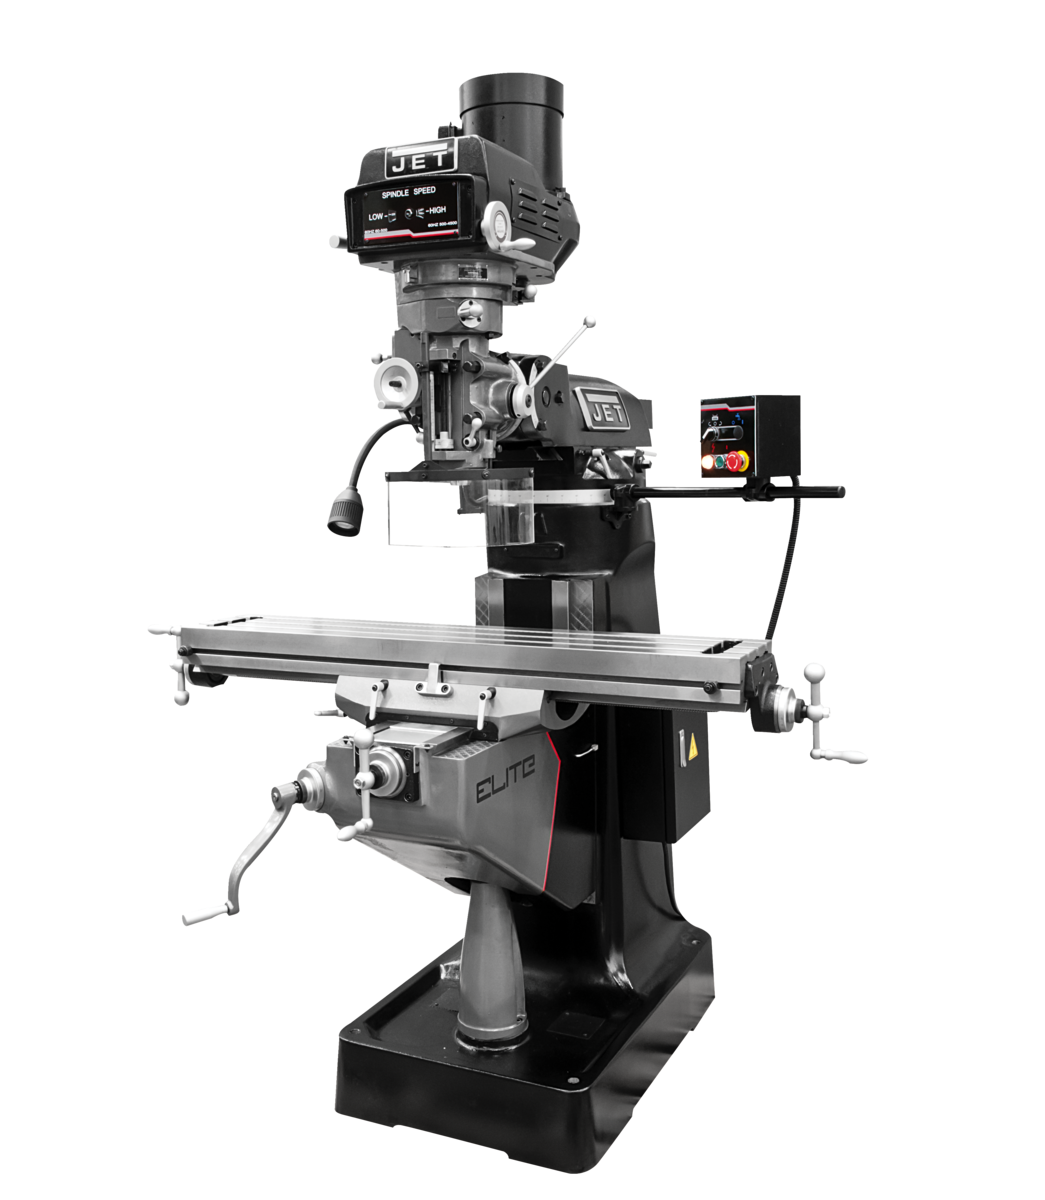 ETM-949 Mill with 3-Axis ACU-RITE 303 (Knee) DRO and Servo X, Y, Z-Axis Powerfeeds and USA Air Powered Draw Bar